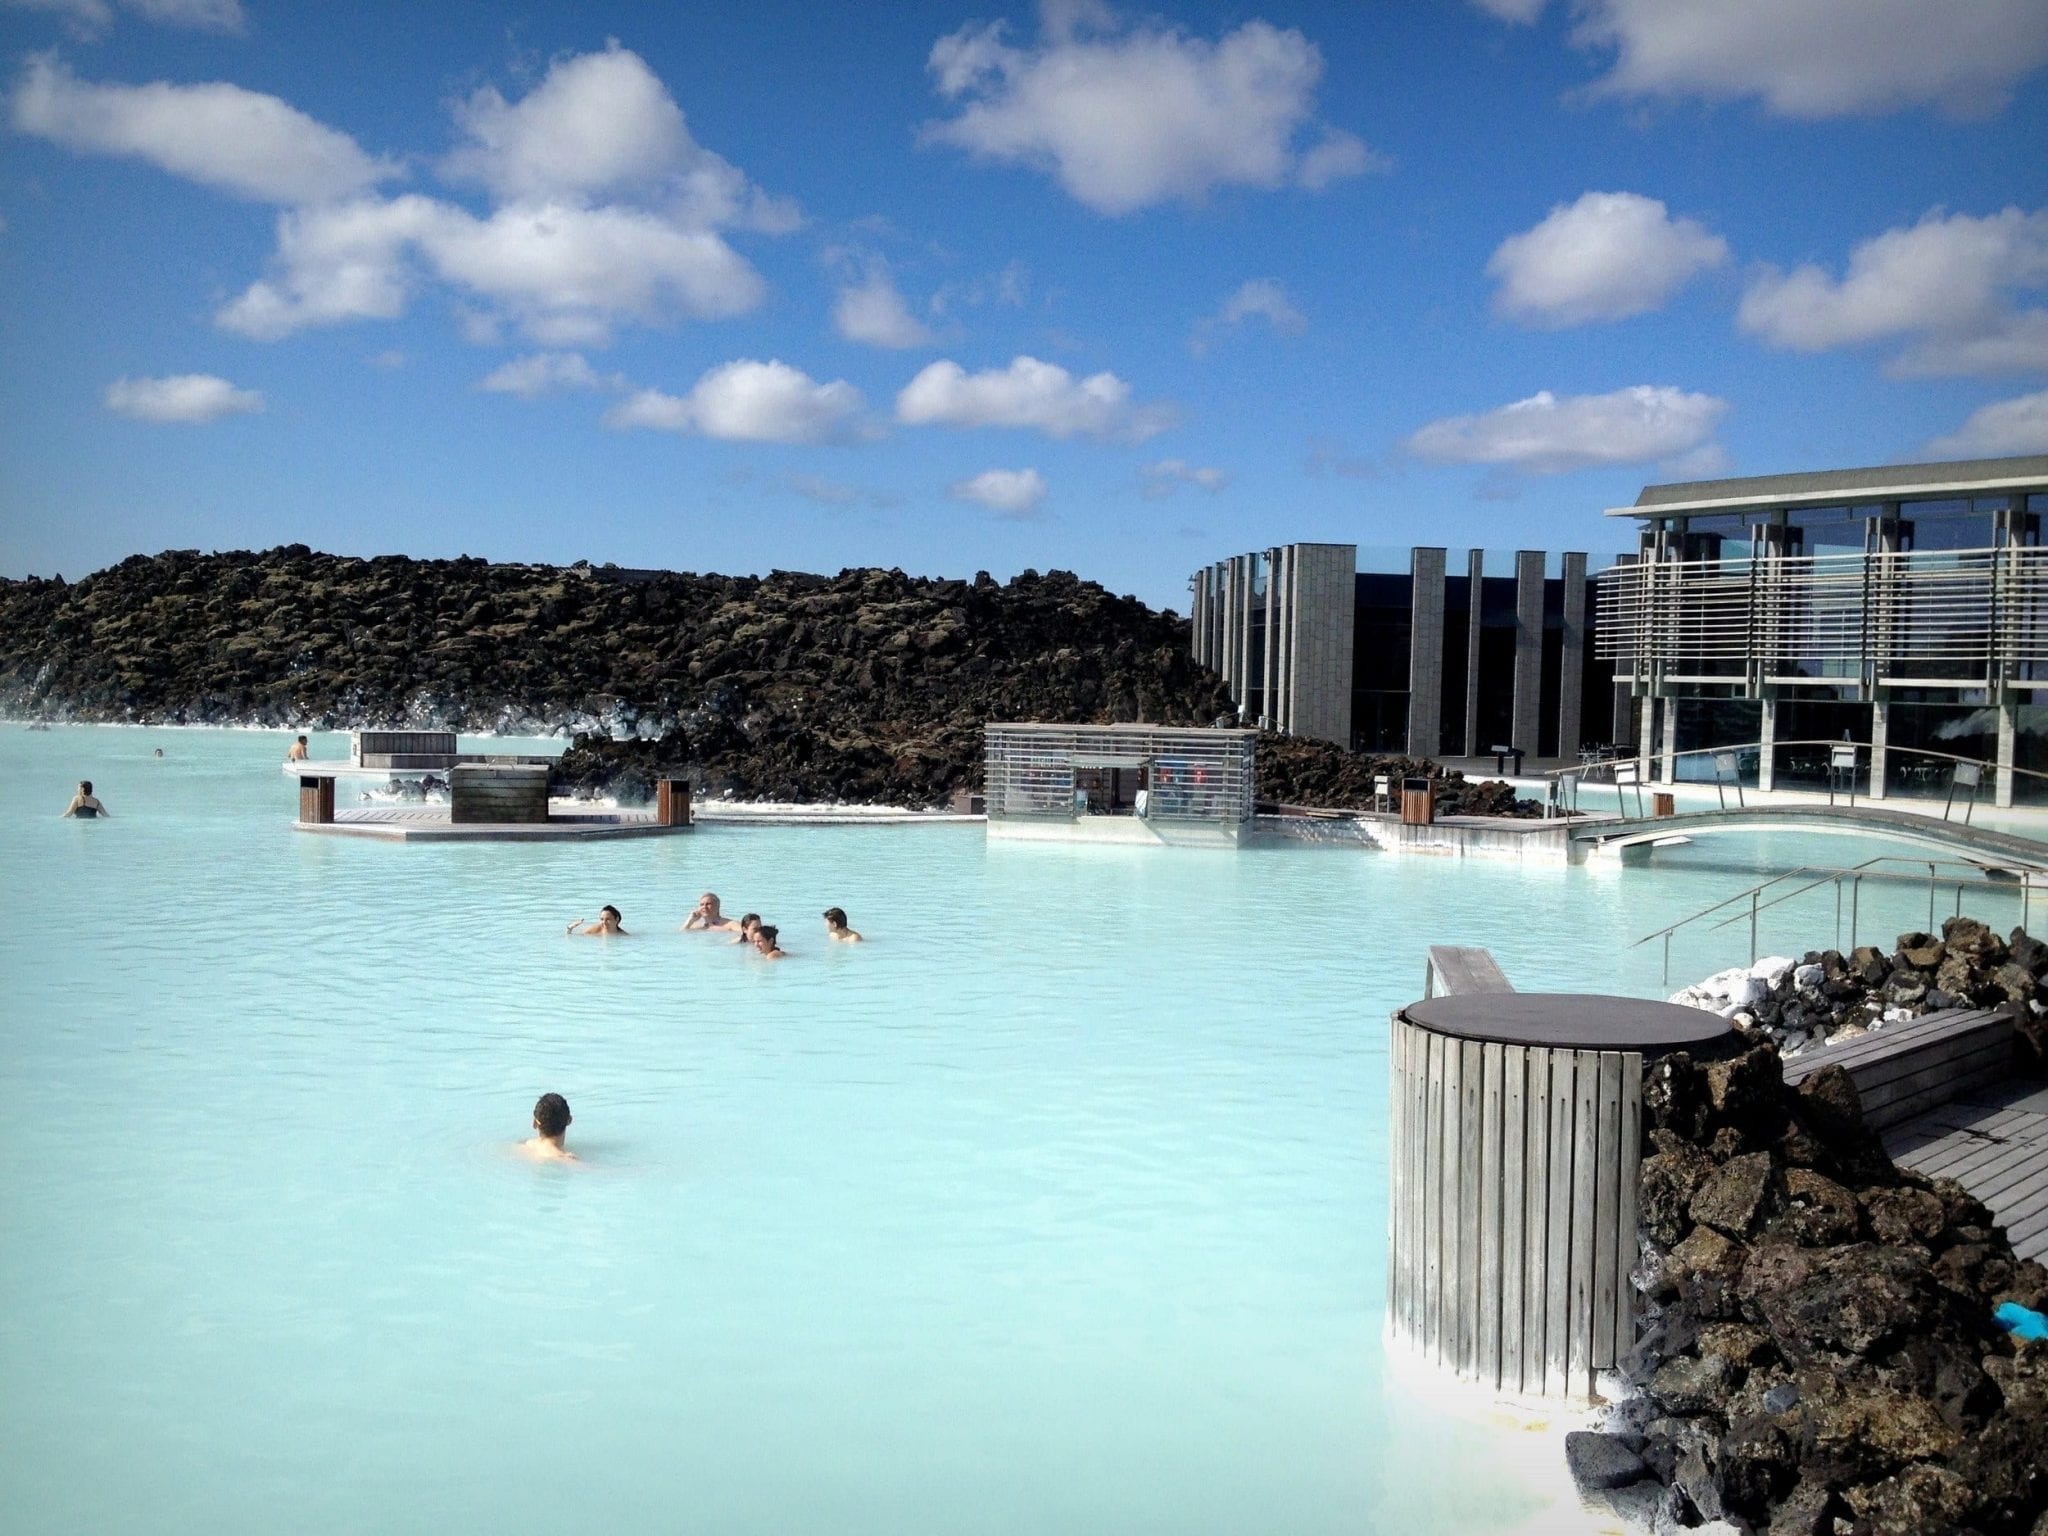 In Iceland, the Blue Lagoon -- pale turquoise milky water with people swimming in it, underneath a bright blue sky with clouds.